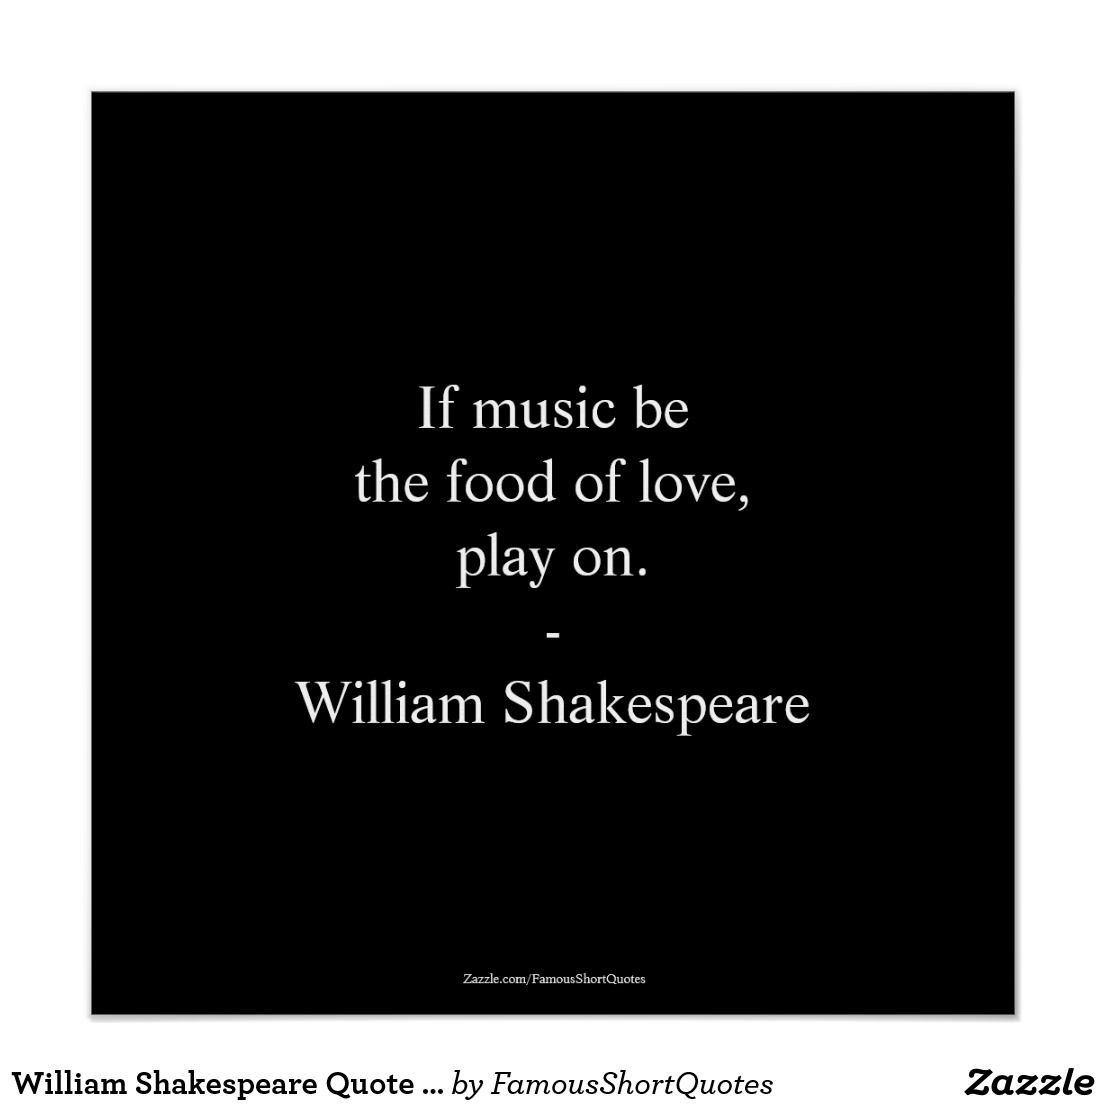 Famous Short Quotes William Shakespeare Quote  Love Poster  English Poets Famous